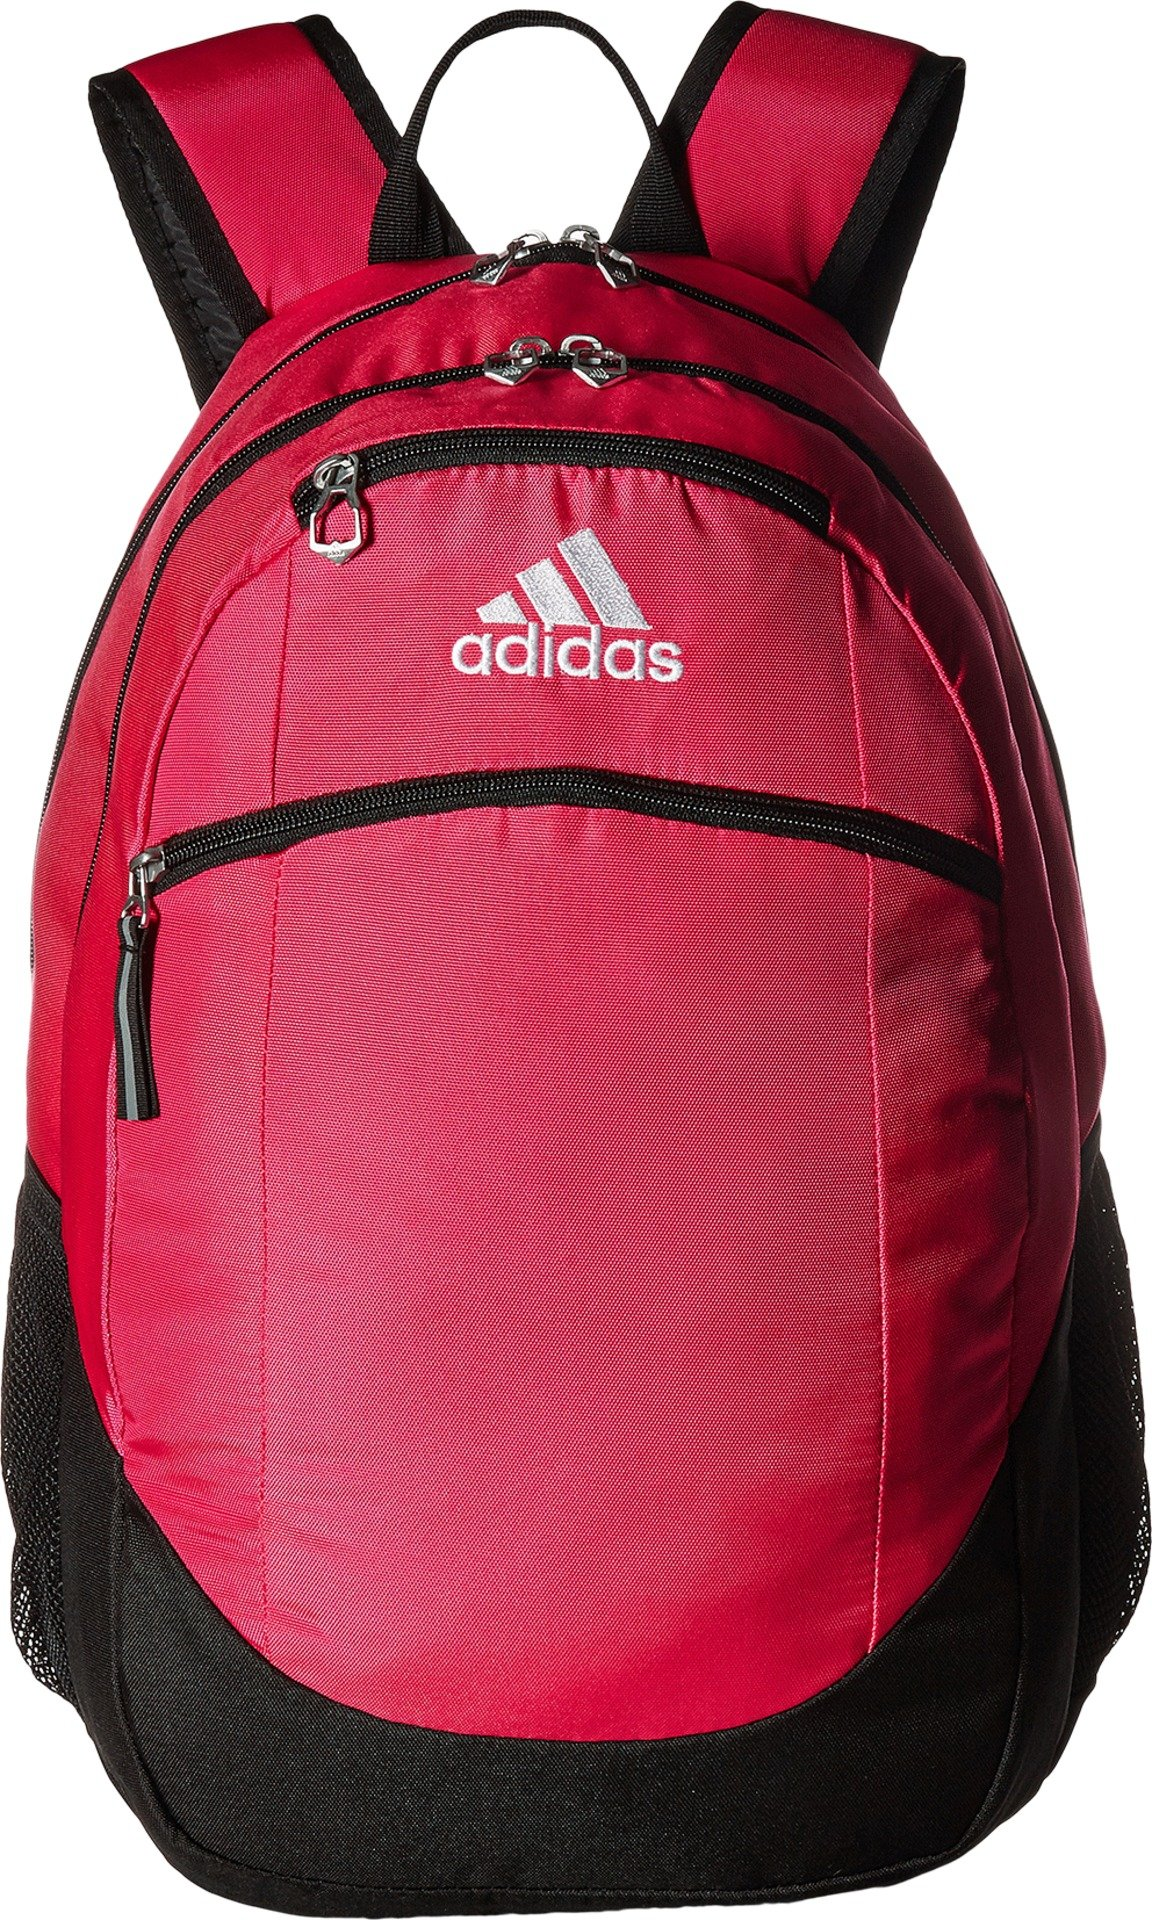 ef57fcdfeab adidas Striker II Backpack, Shock Pink Black White, One Size ...